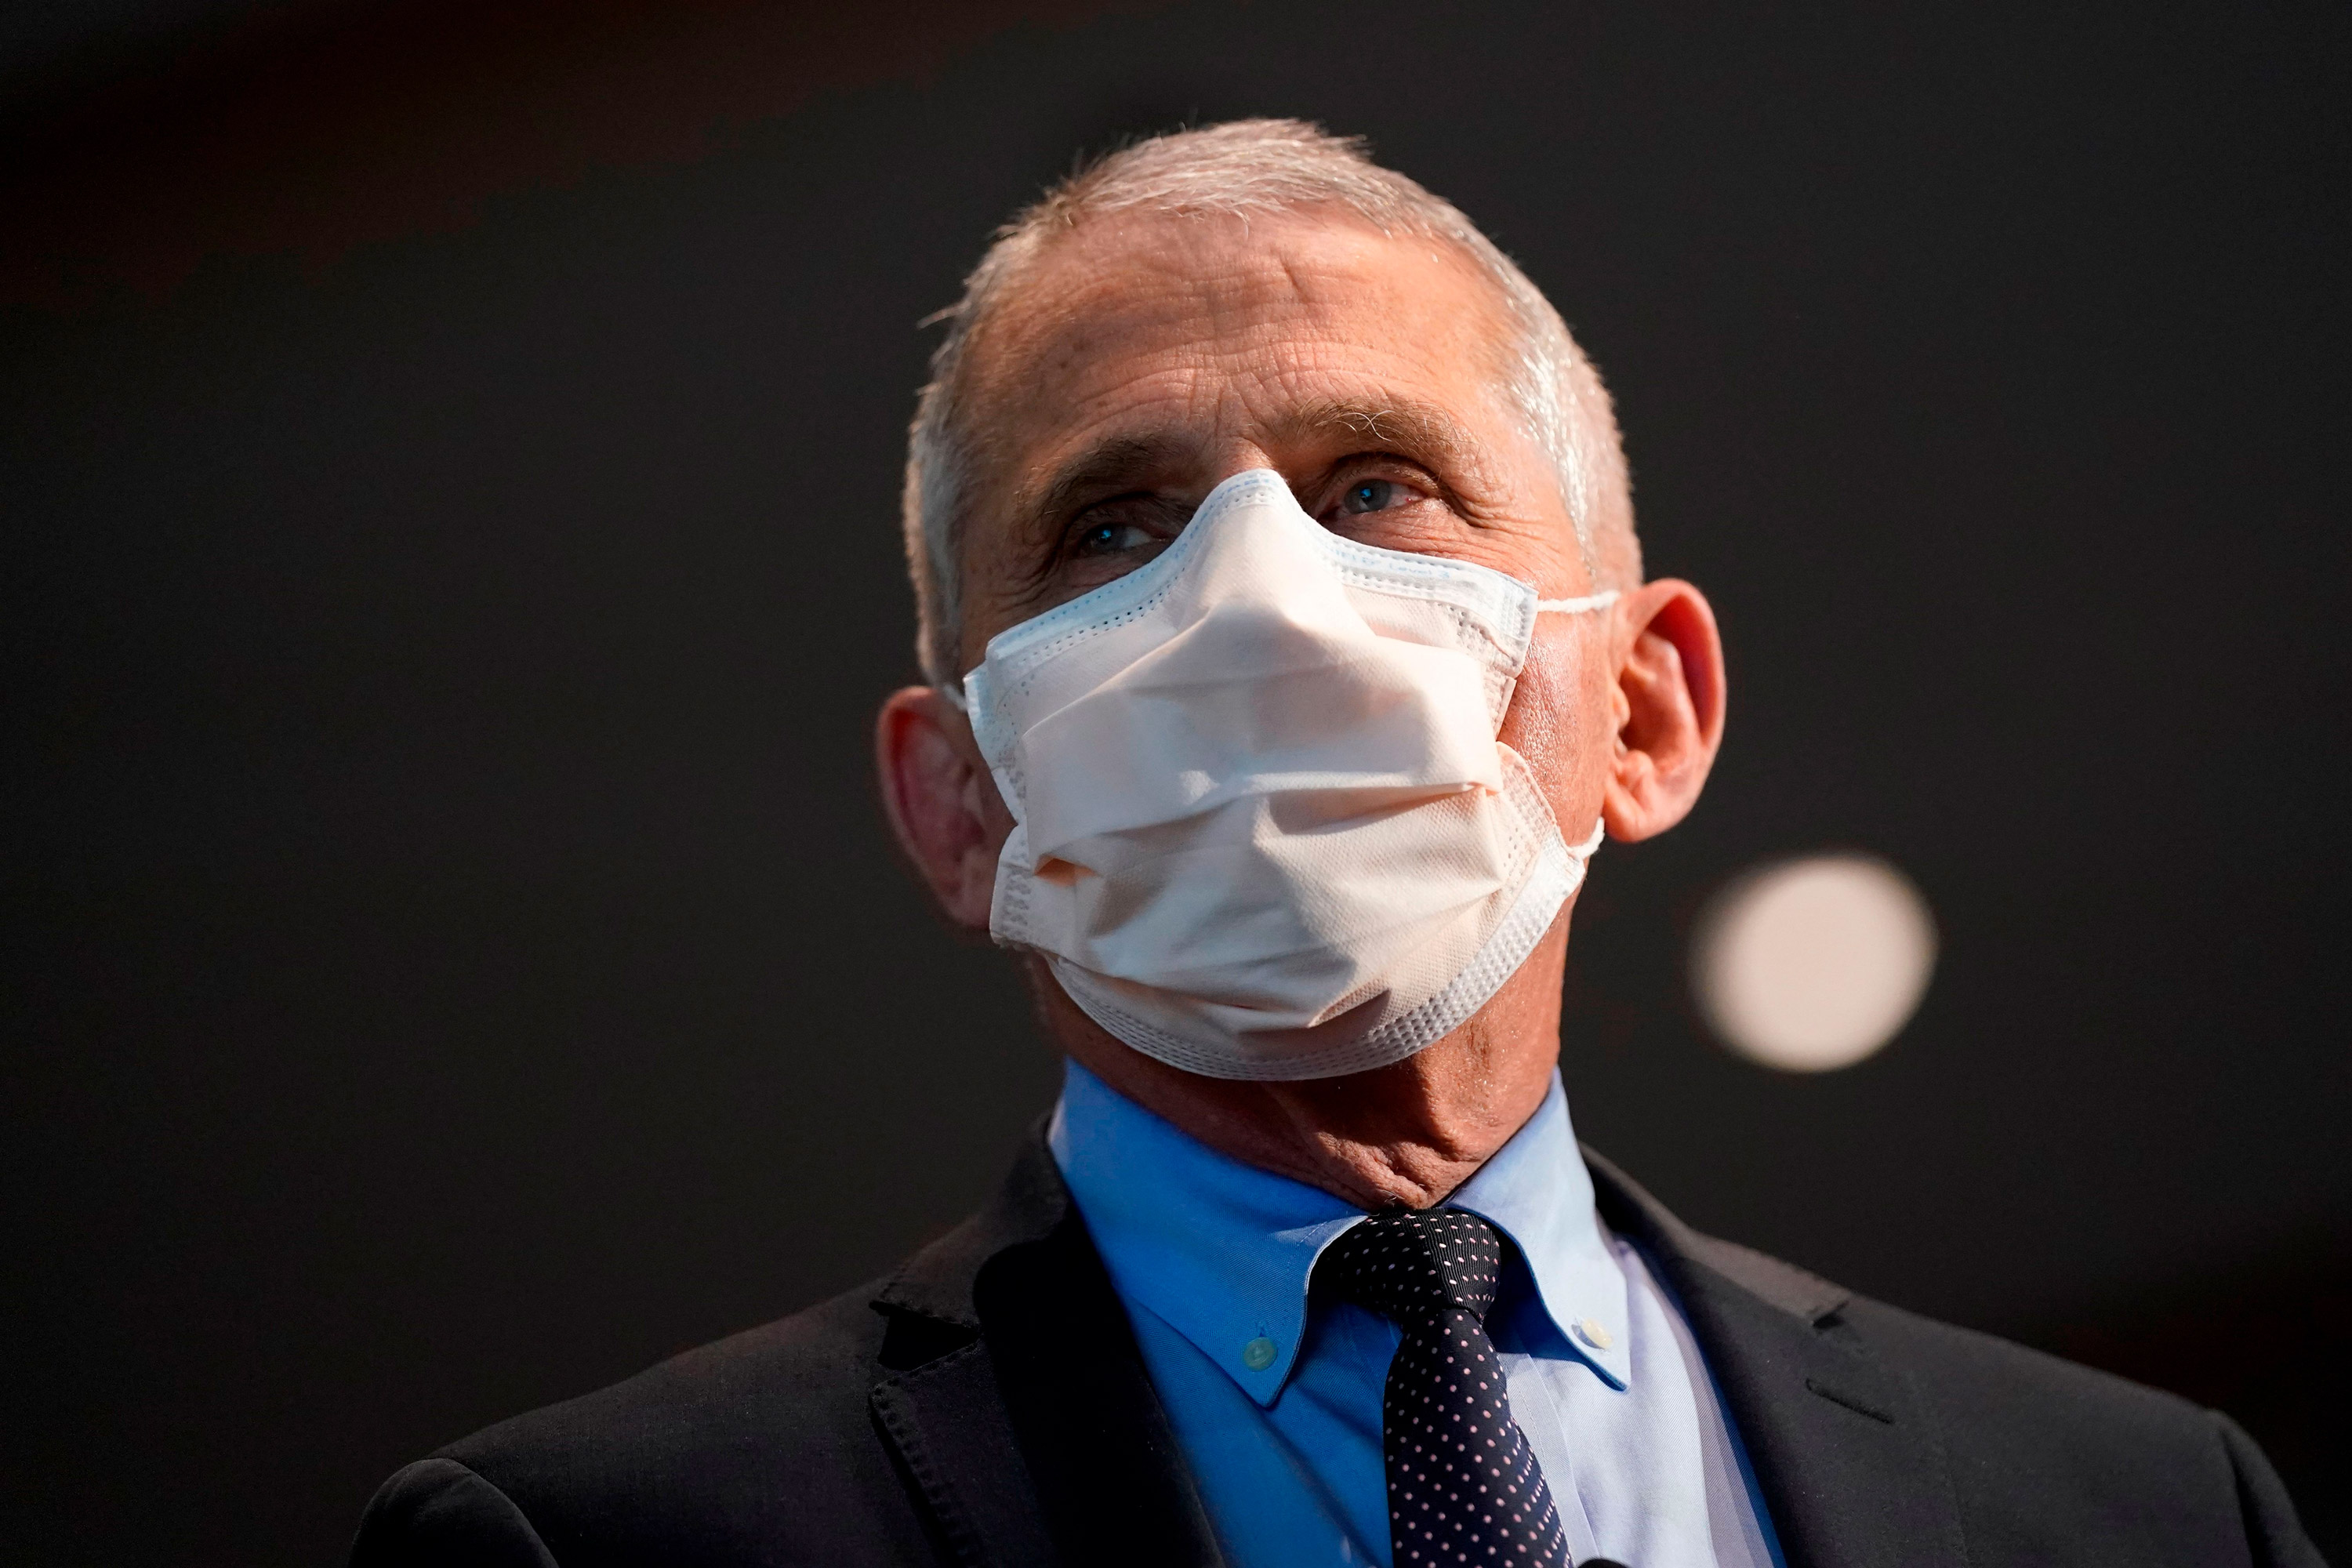 Dr. Anthony Fauci, director of the National Institute of Allergy and Infectious Diseases, speaks at the National Institutes of Health on December 22, 2020, in Bethesda, Maryland.